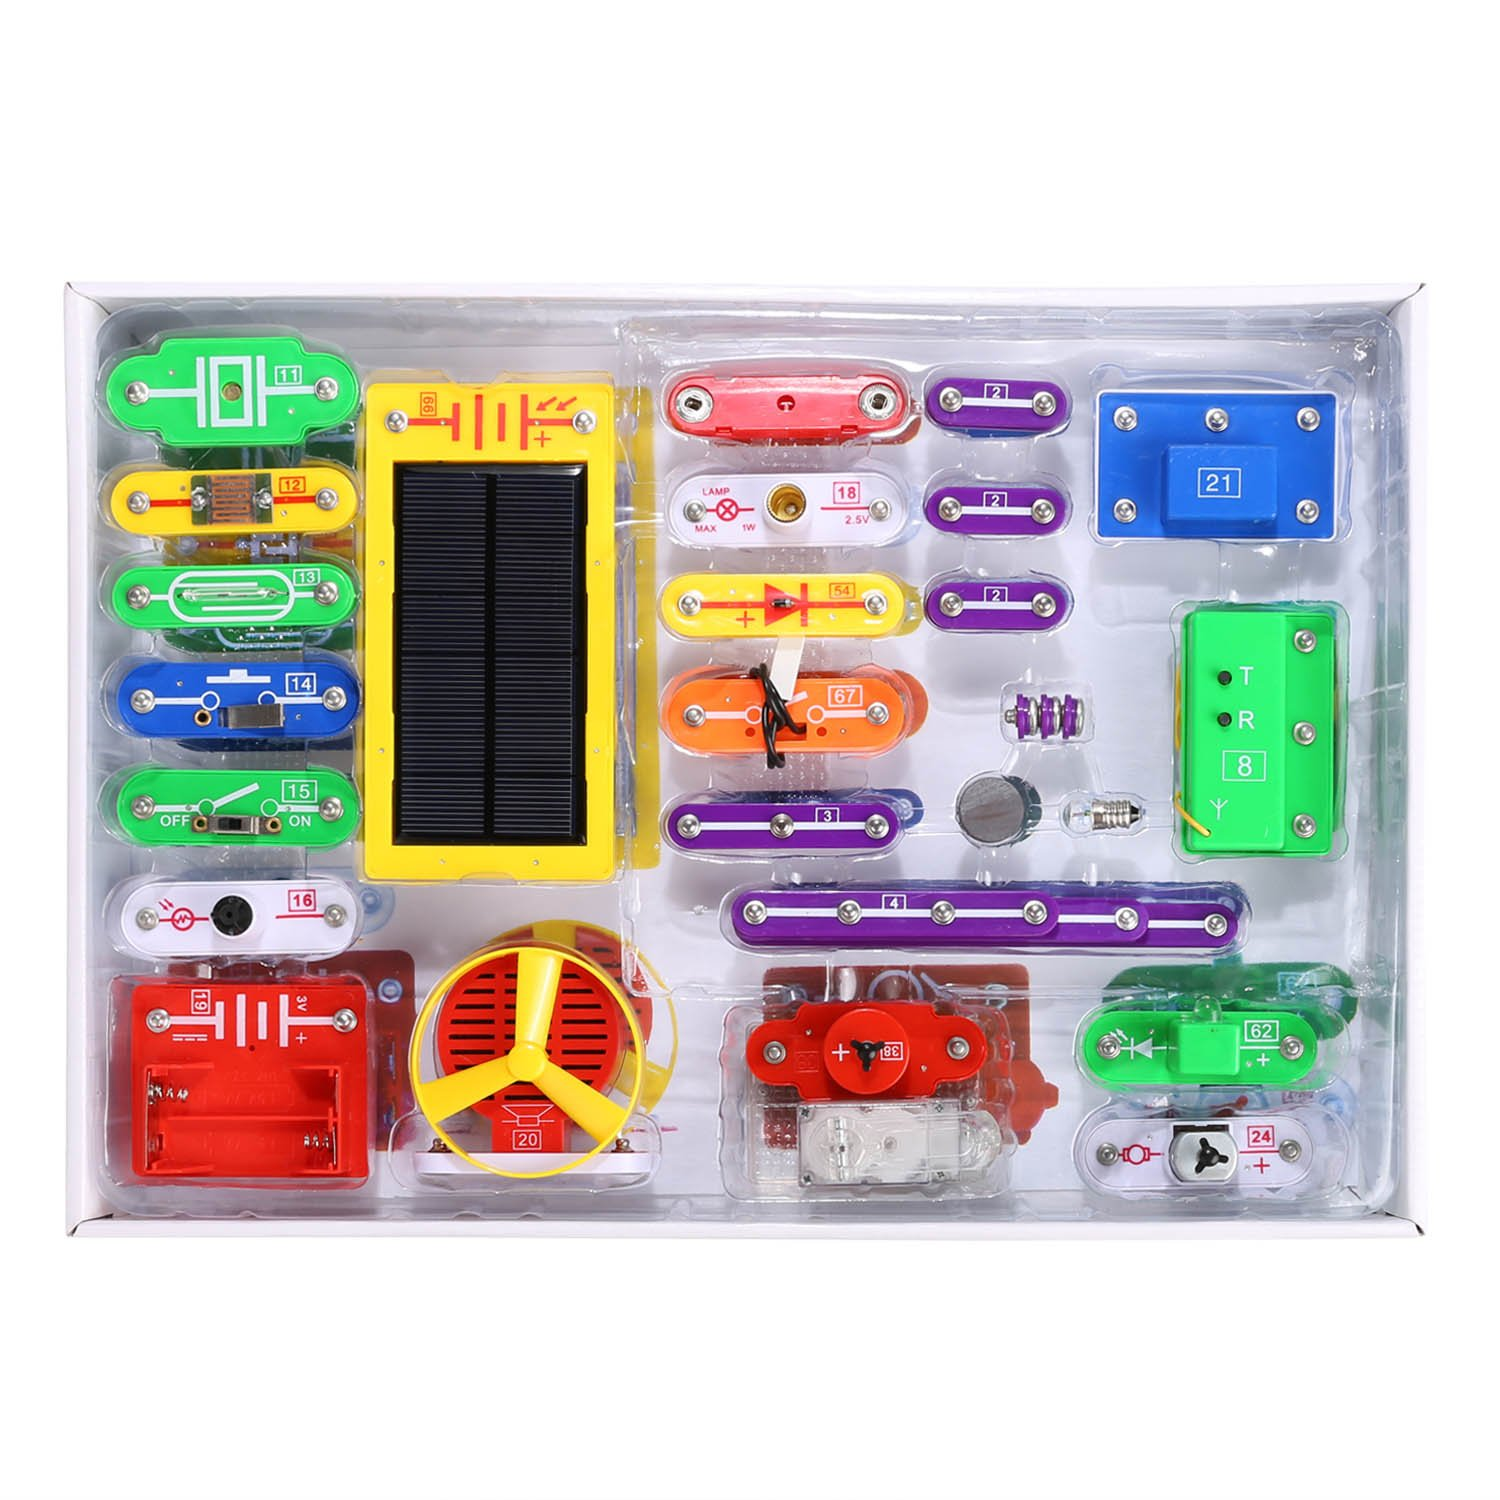 Anfan Electric Circuits Kit,Kids Electronics Exploration Kit,Solar Electronics Block Kit DIY Toy for Child (Type 2)